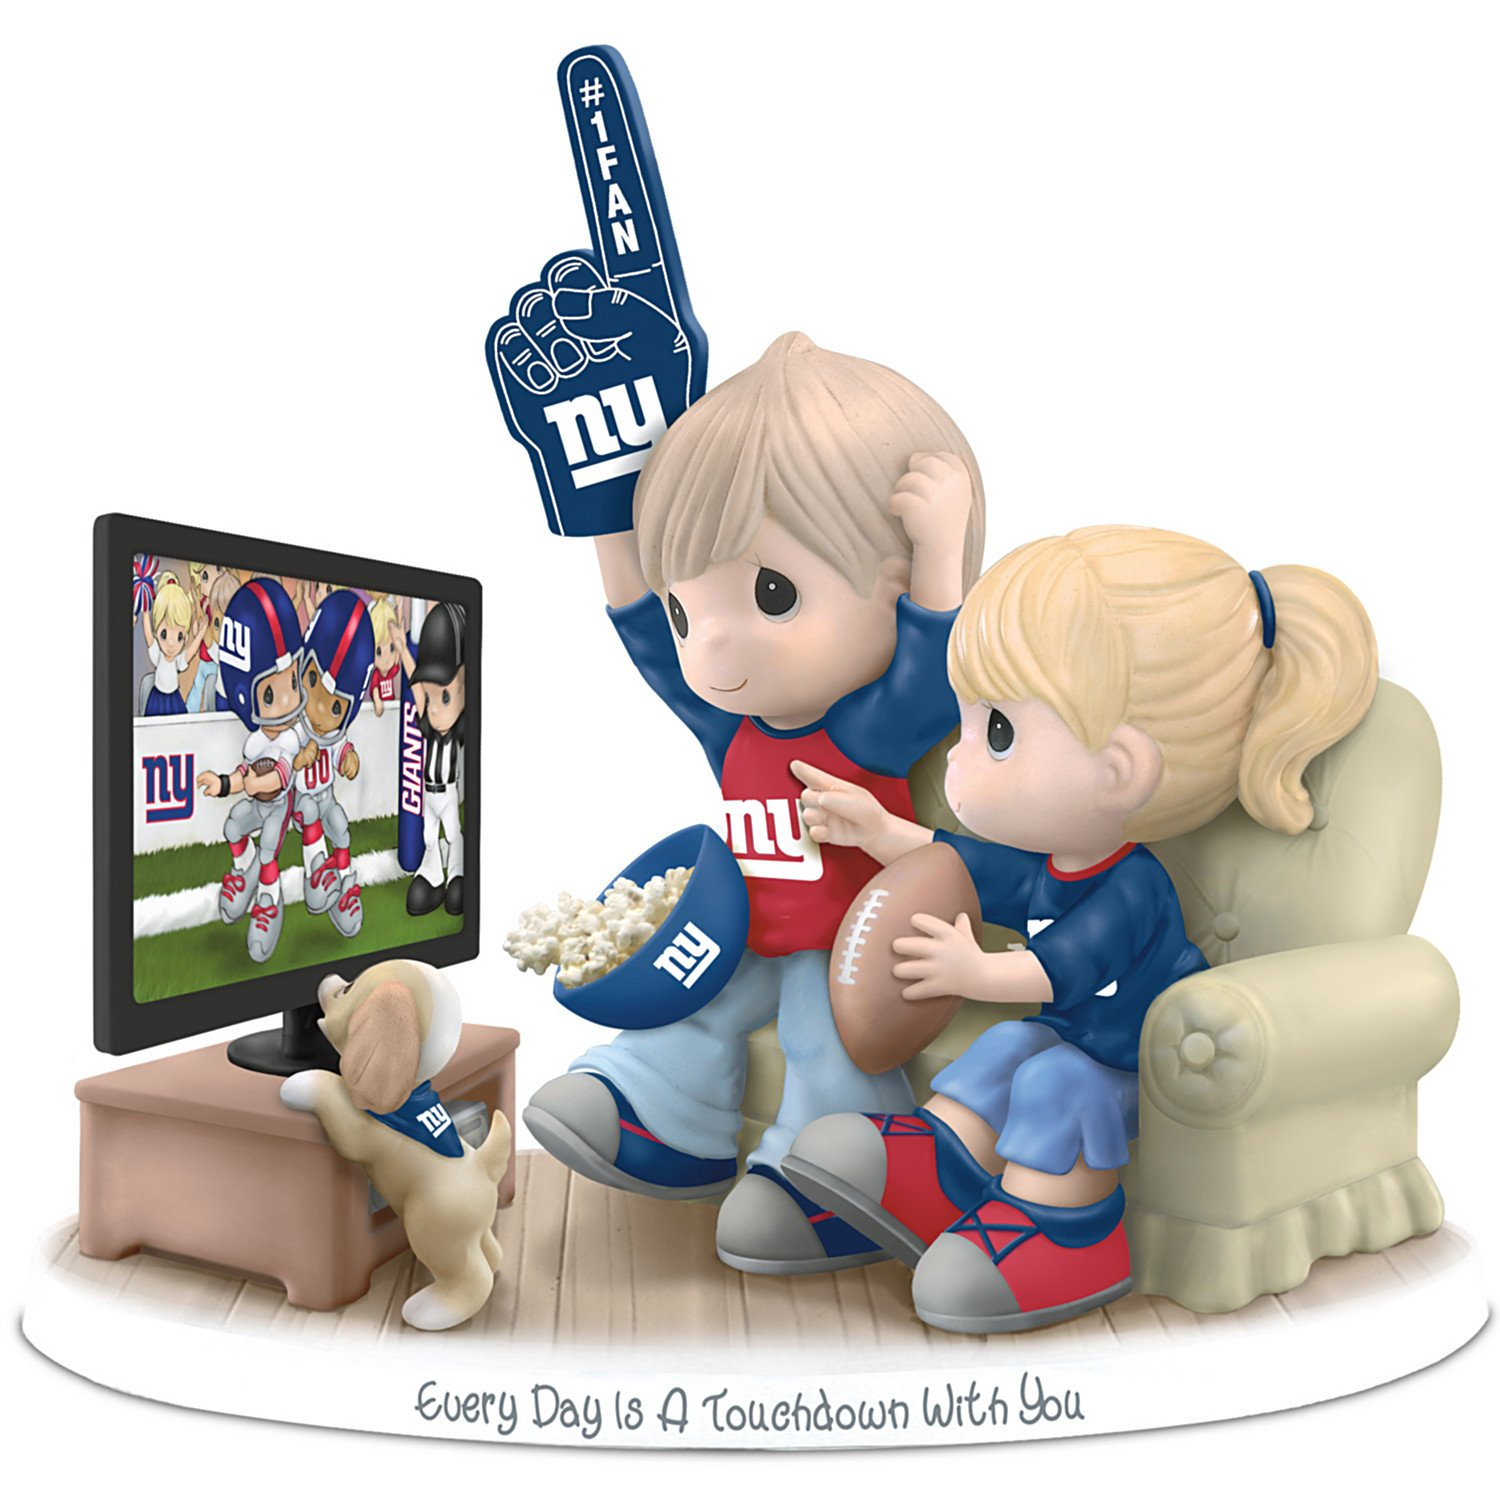 Figurine: Precious Moments Every Day Is A Touchdown With You Giants Figurine by The Hamilton Collection by The Hamilton Collection